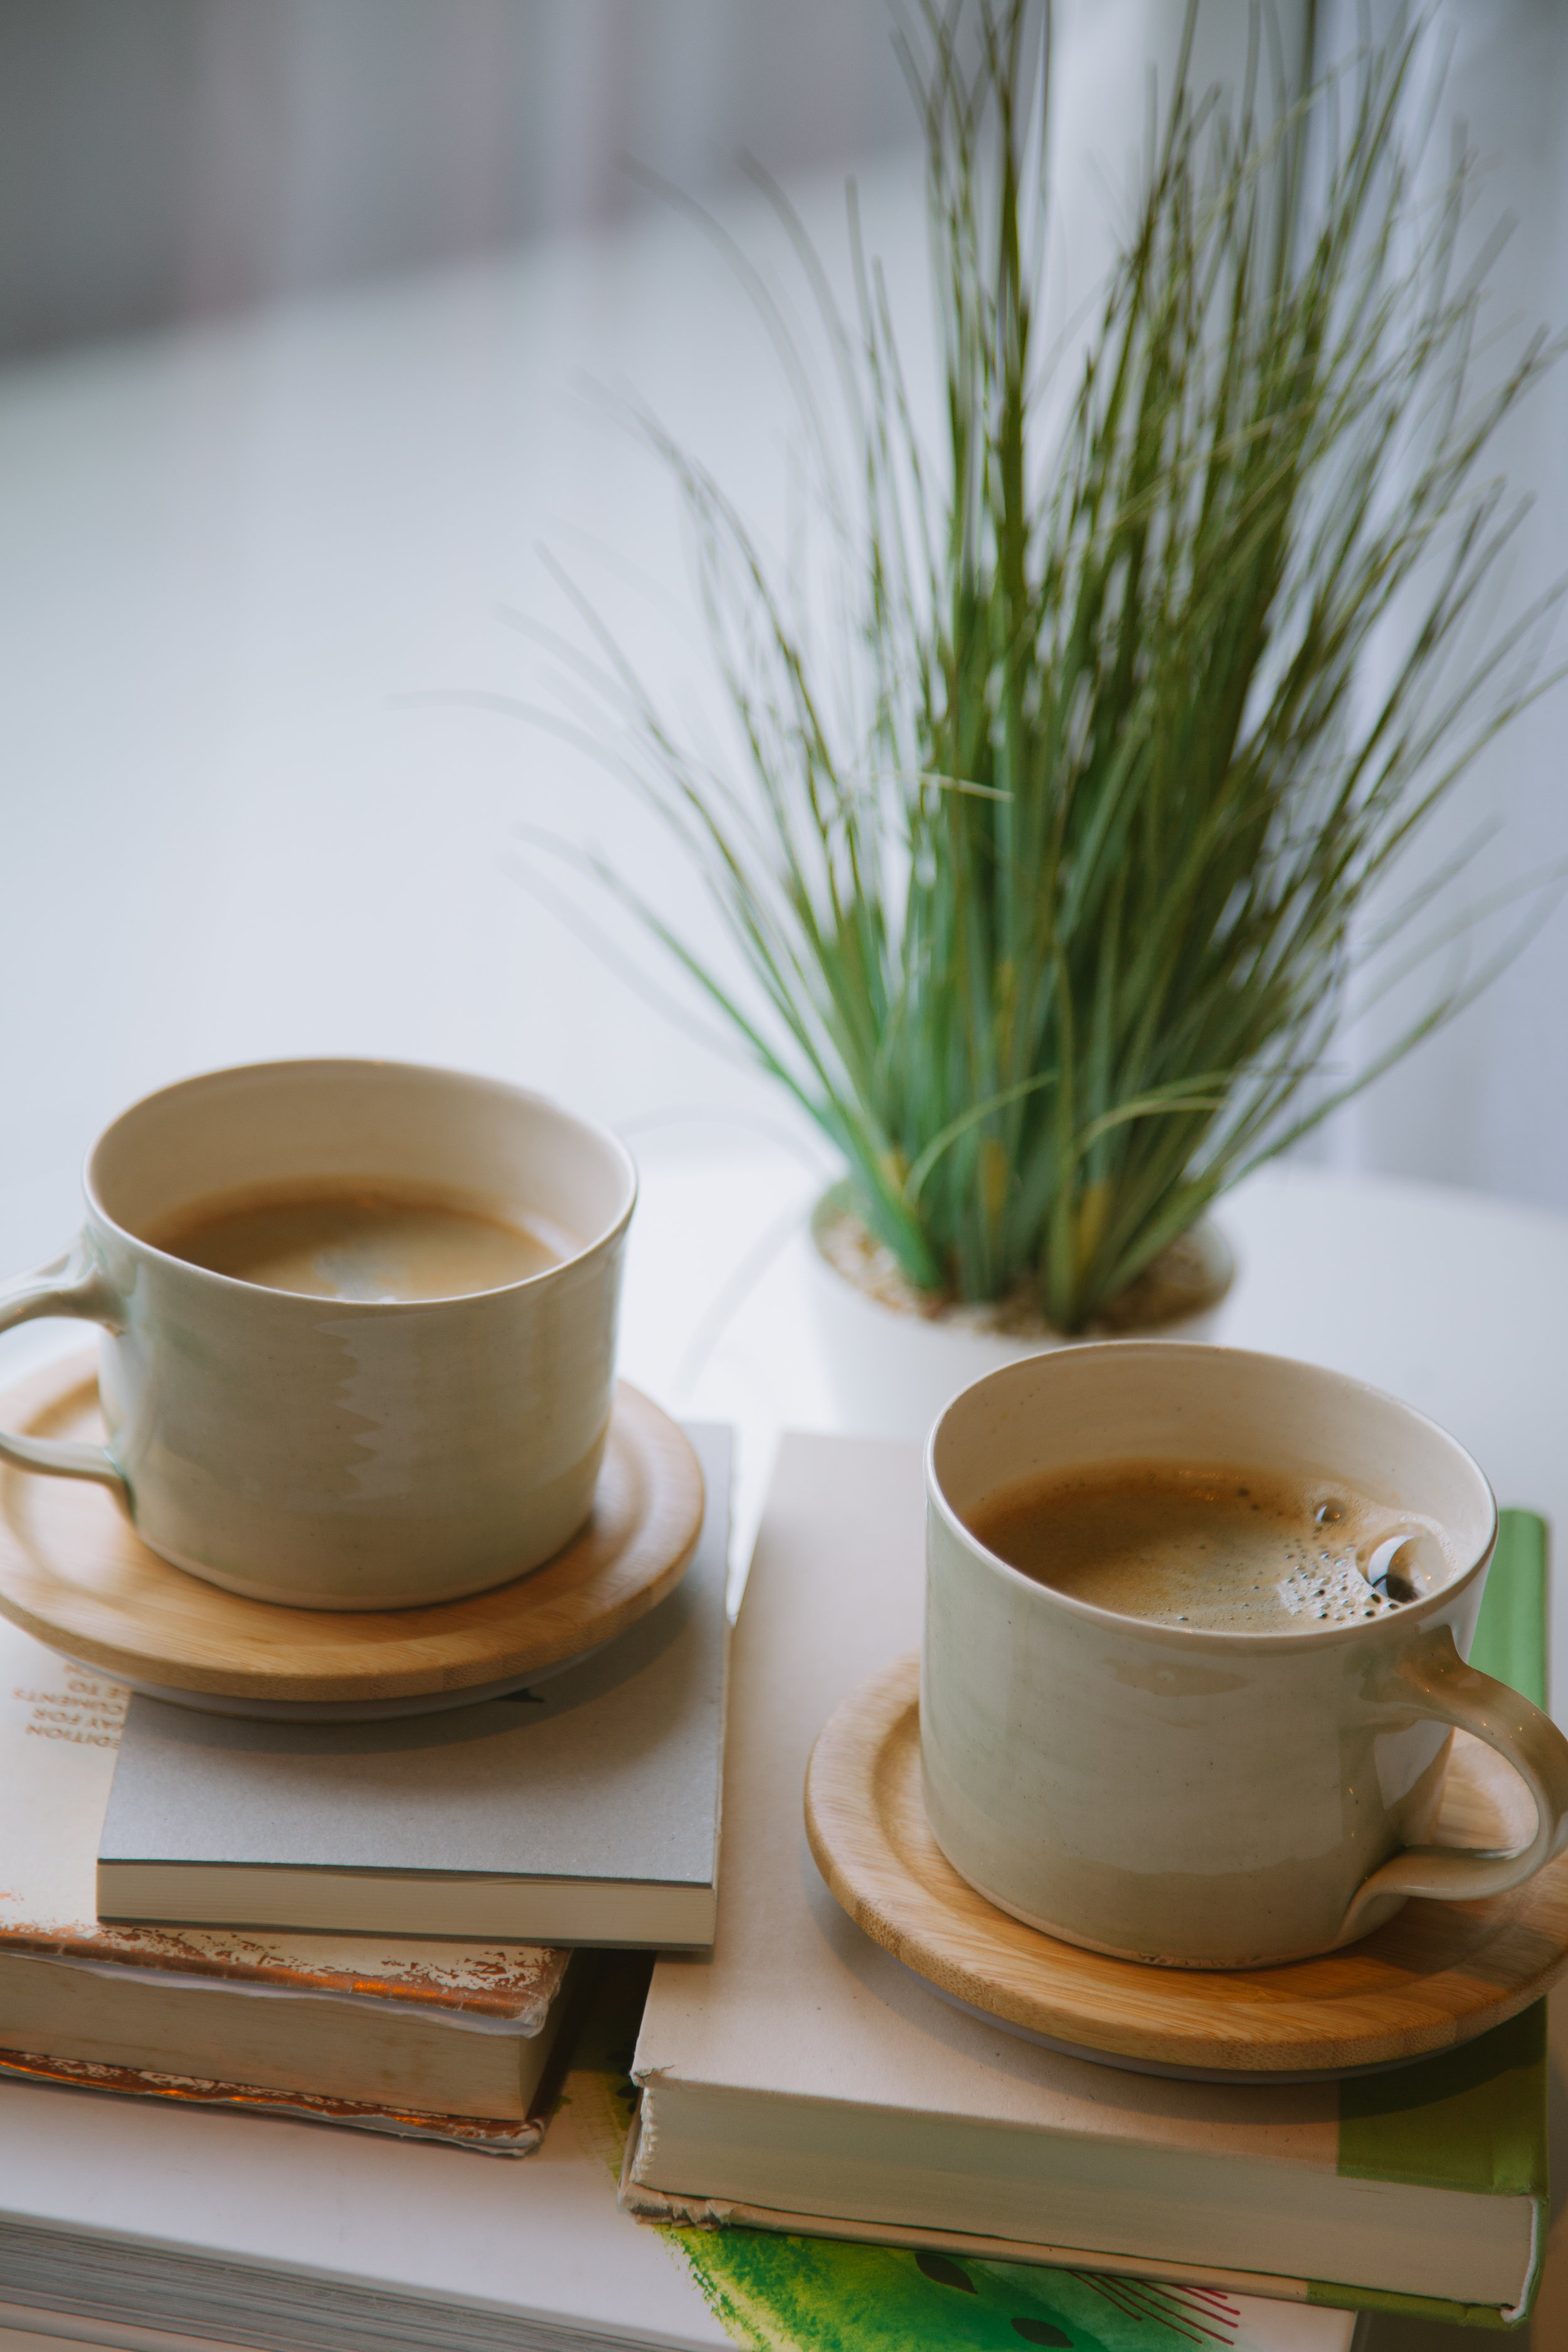 Coffee, the nonalcoholic drink of guilty pleasure, has for a long time been demonized. In recent years, however, nutritional data has surfaced that reverse much of these long-standing results and affirm that coffee no longer needs to be shamed. But there are some catches.Here are 8 things from nutritional science to consider.   -